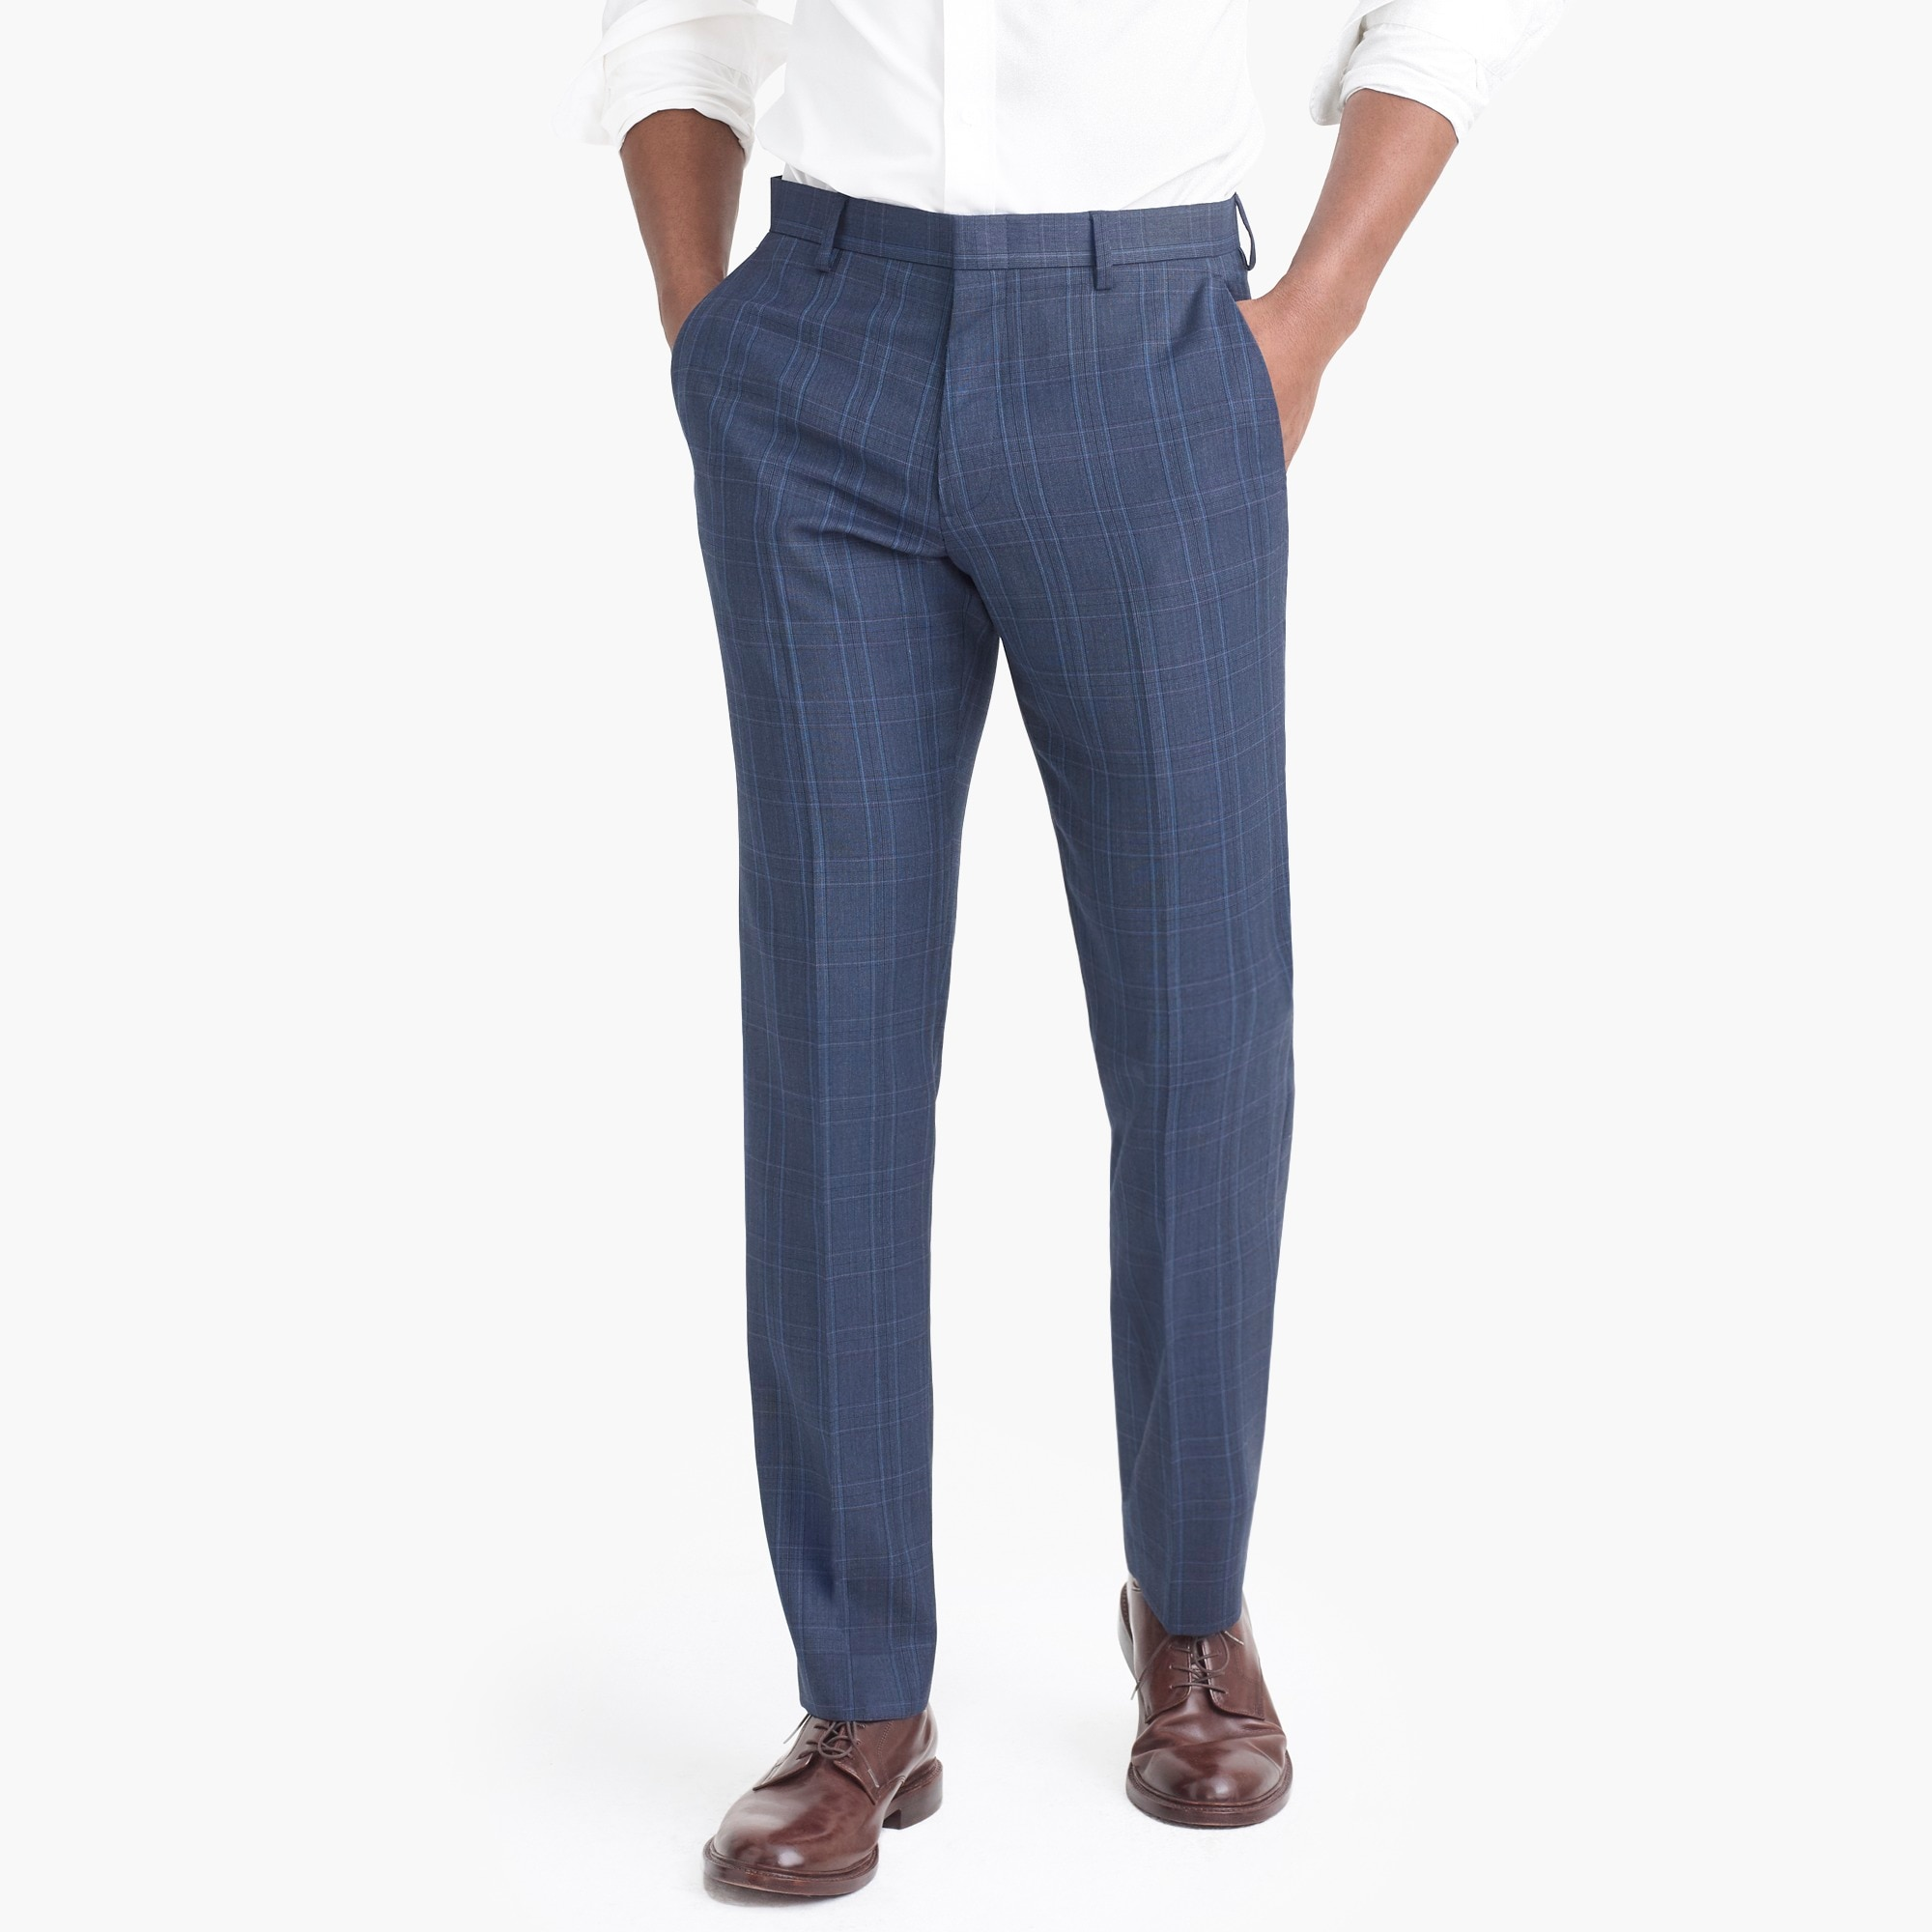 slim-fit thompson suit pant in glen plaid worsted wool : factorymen suits